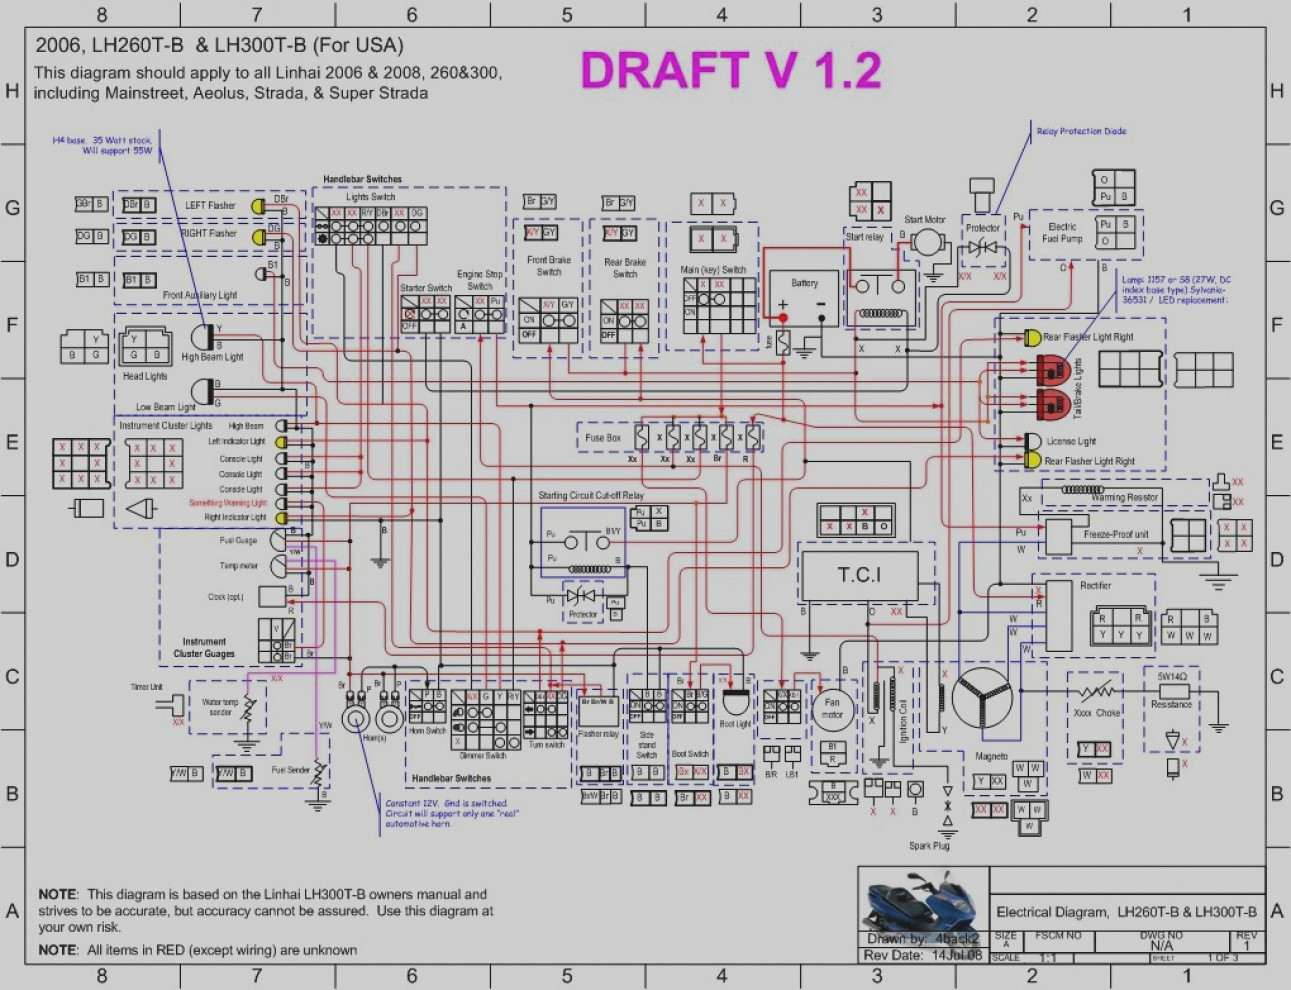 Taotao 49cc Scooter Wiring Diagram 1998 Chevy S10 Engine Diagram Starter Wiring Diagram Schematics